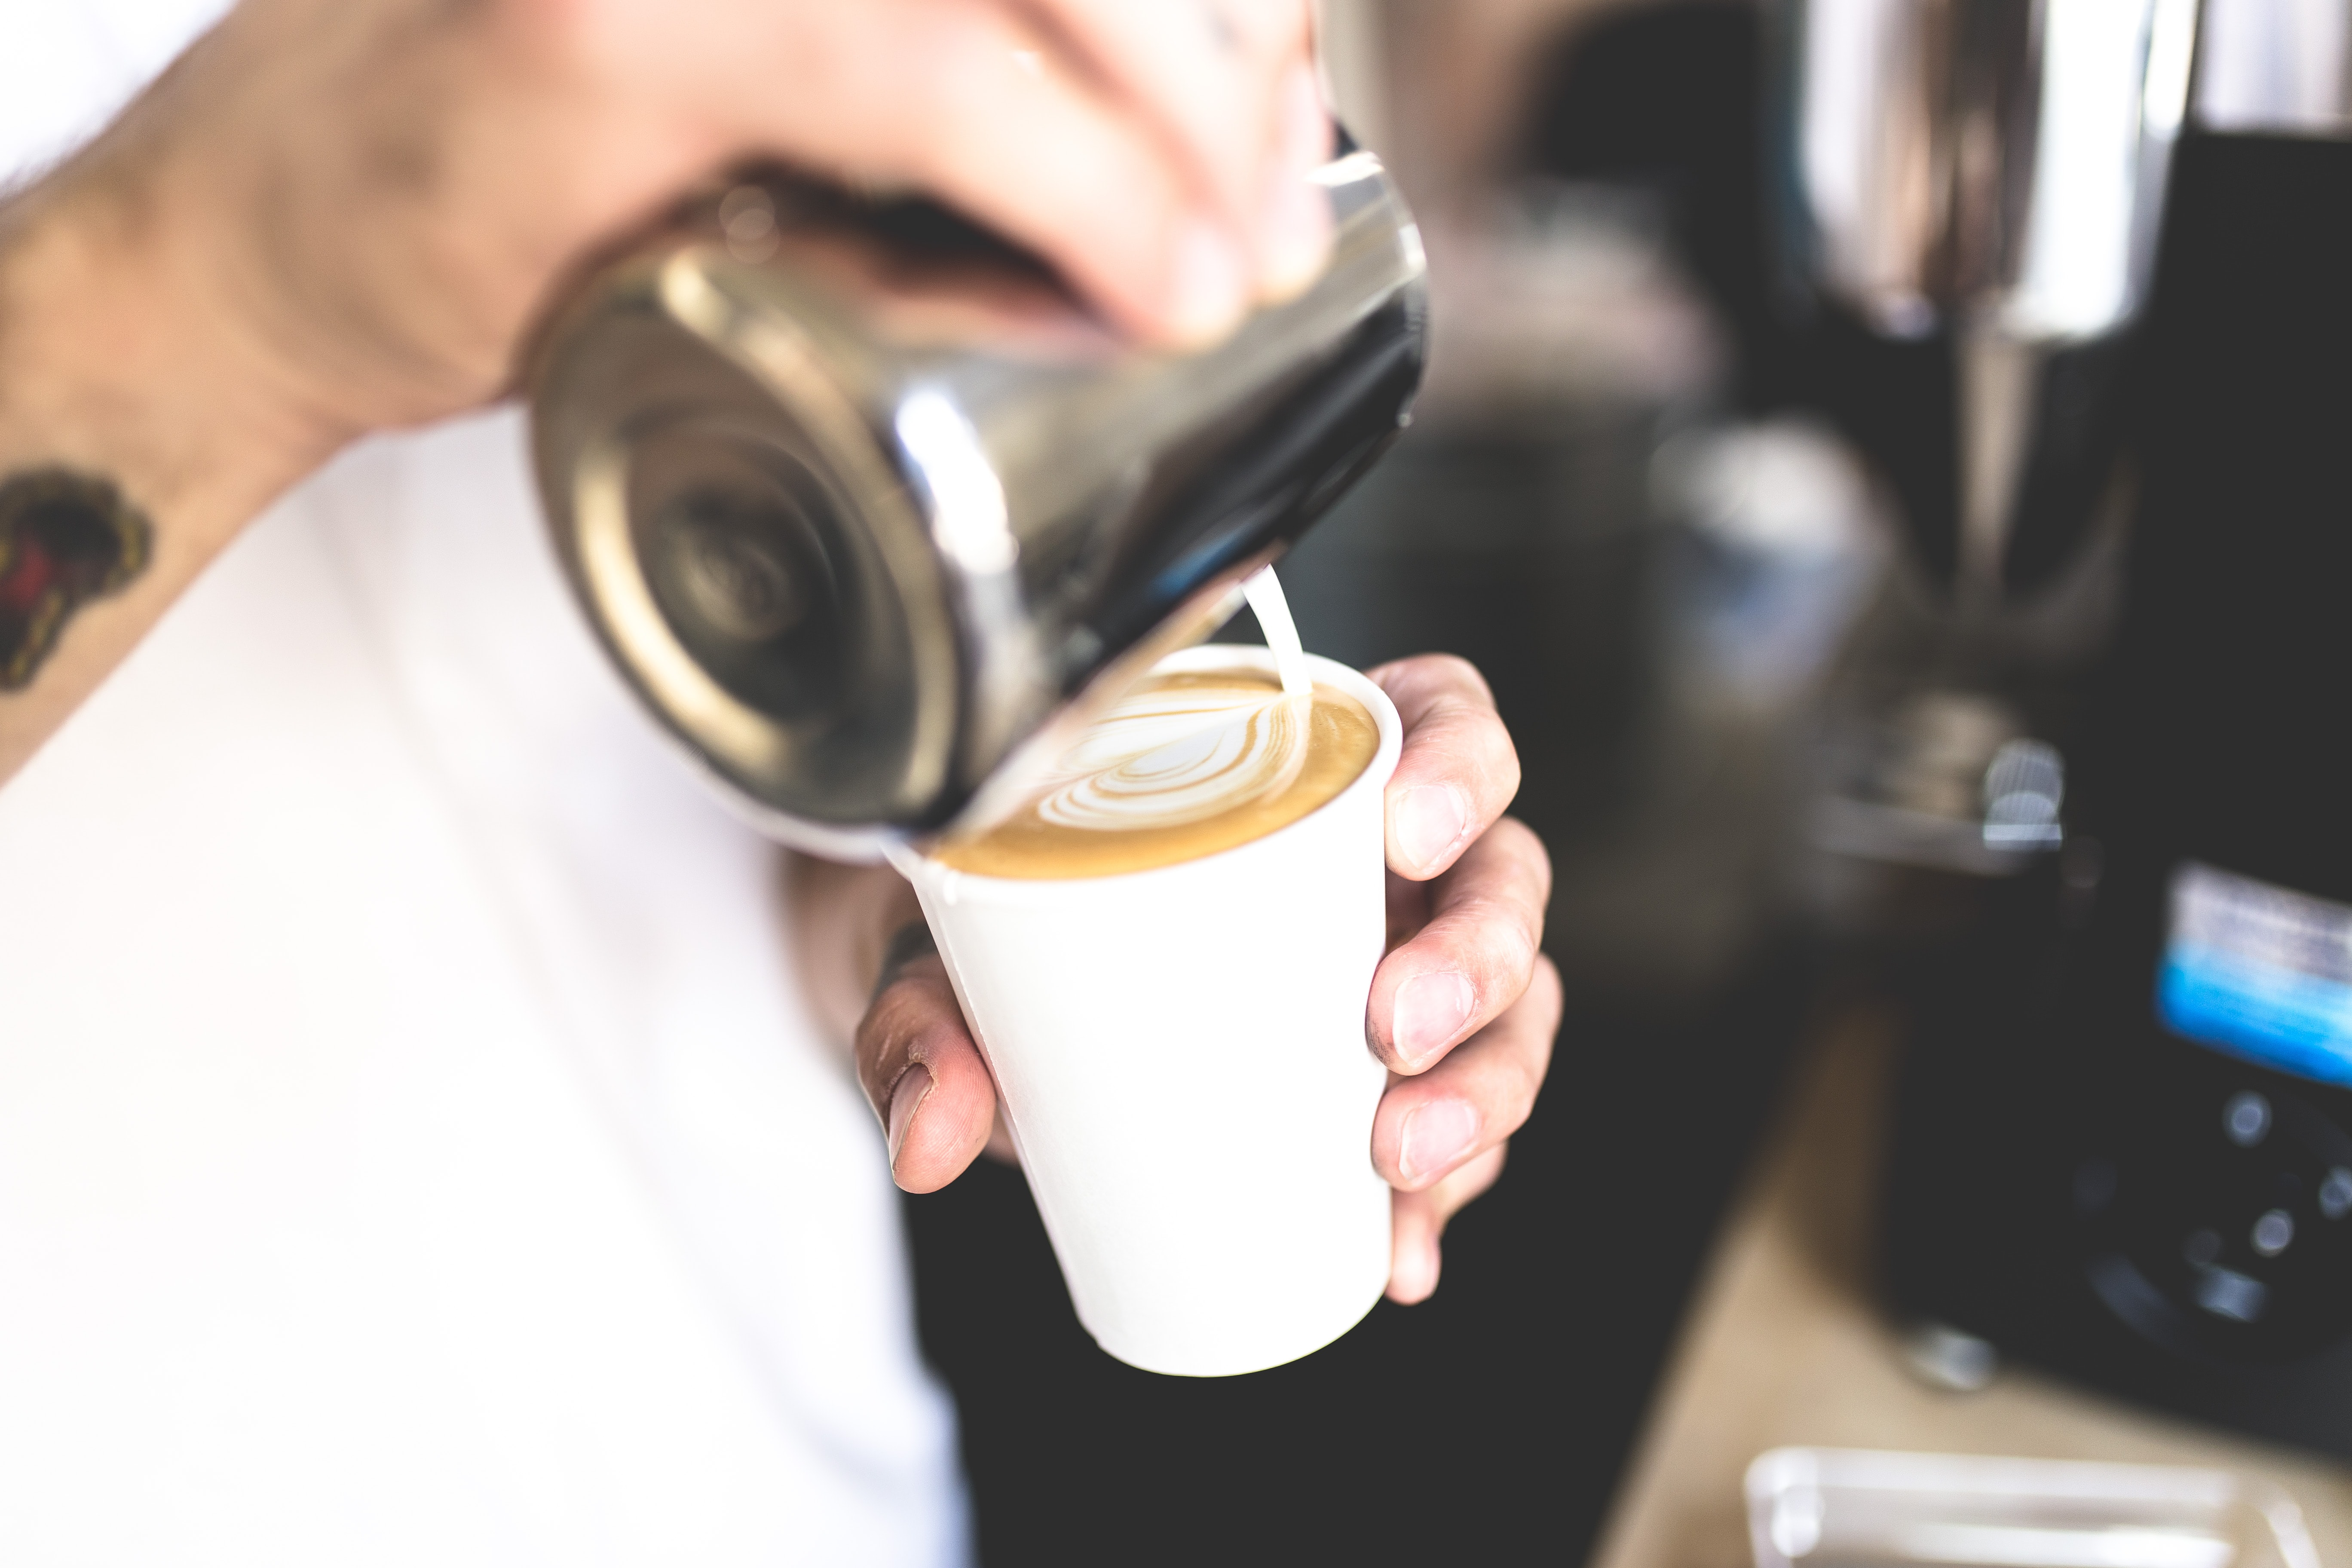 A barista pouring milk into a coffee cup